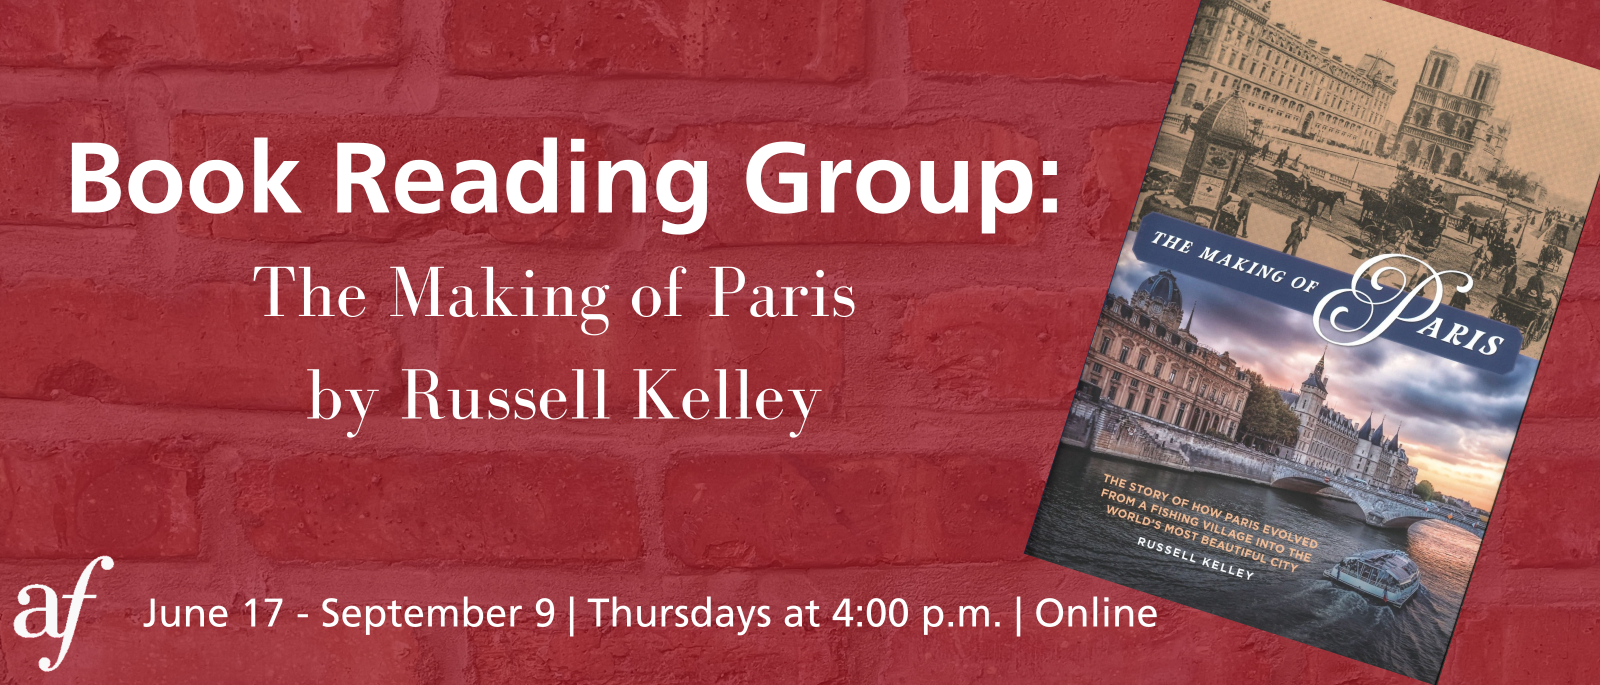 Book Reading Group: The Making of Paris - Session 2